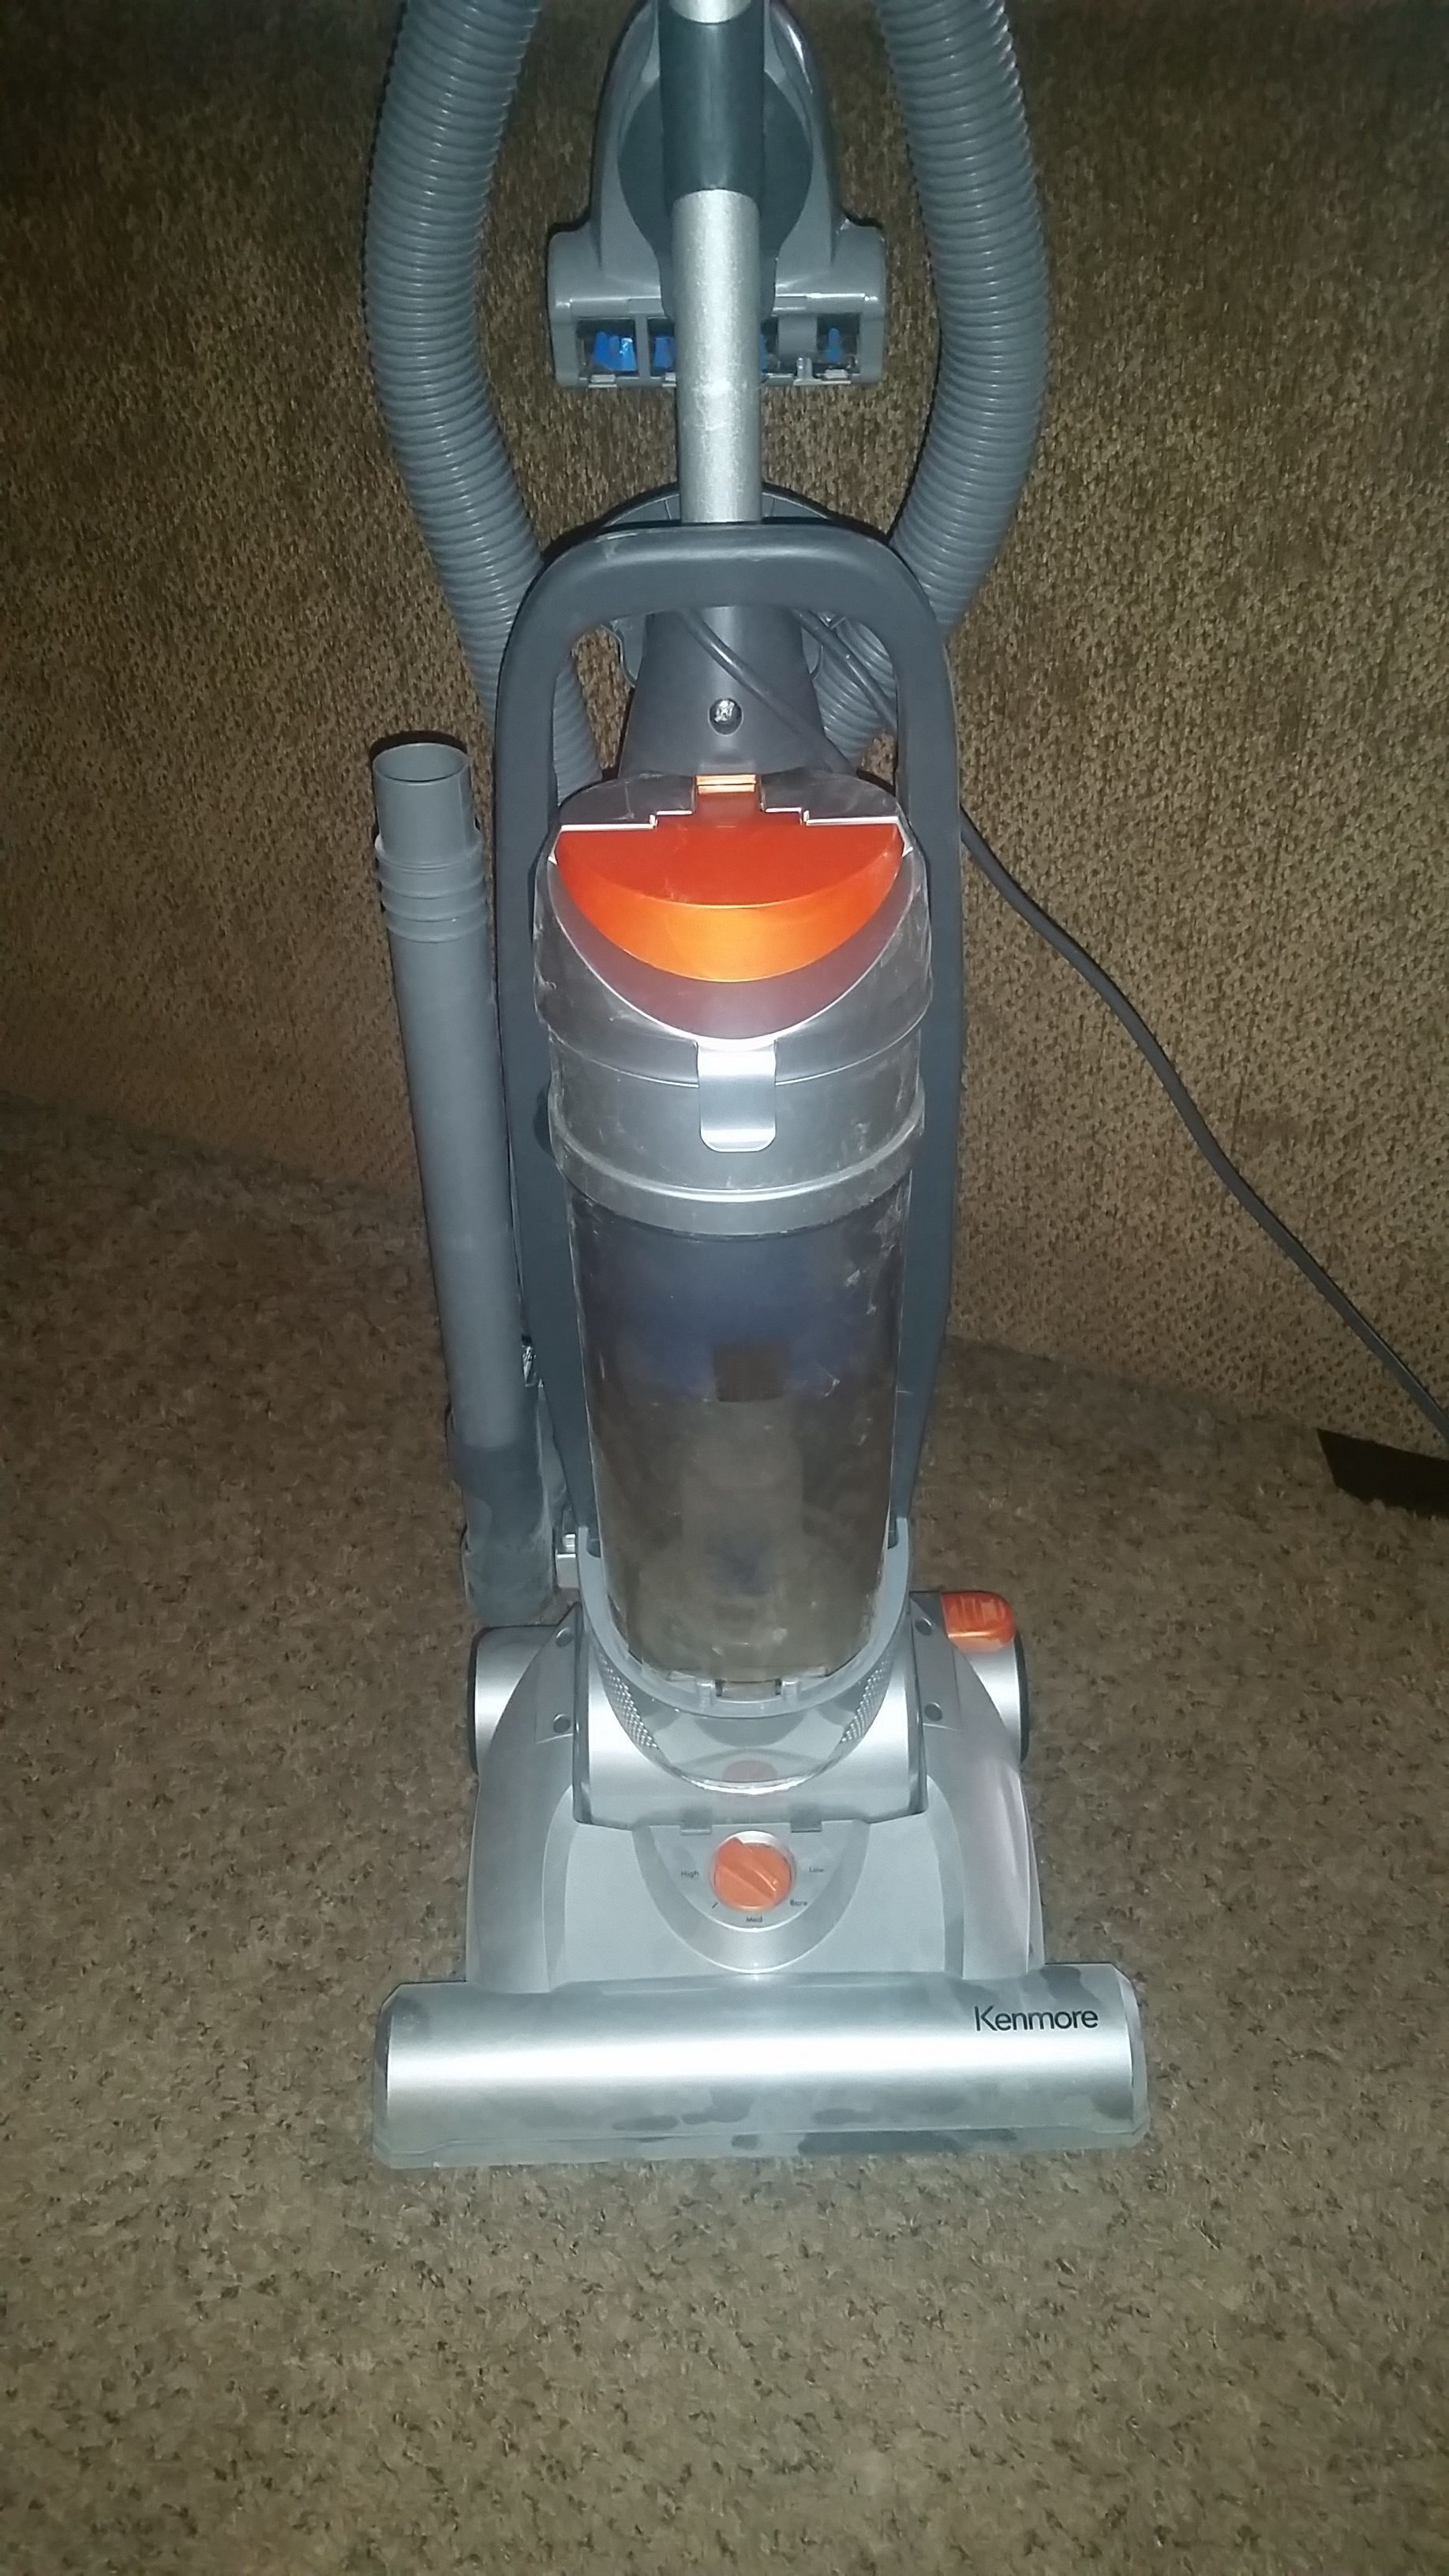 Pictures of Sears Vacuum Upright Cleaners